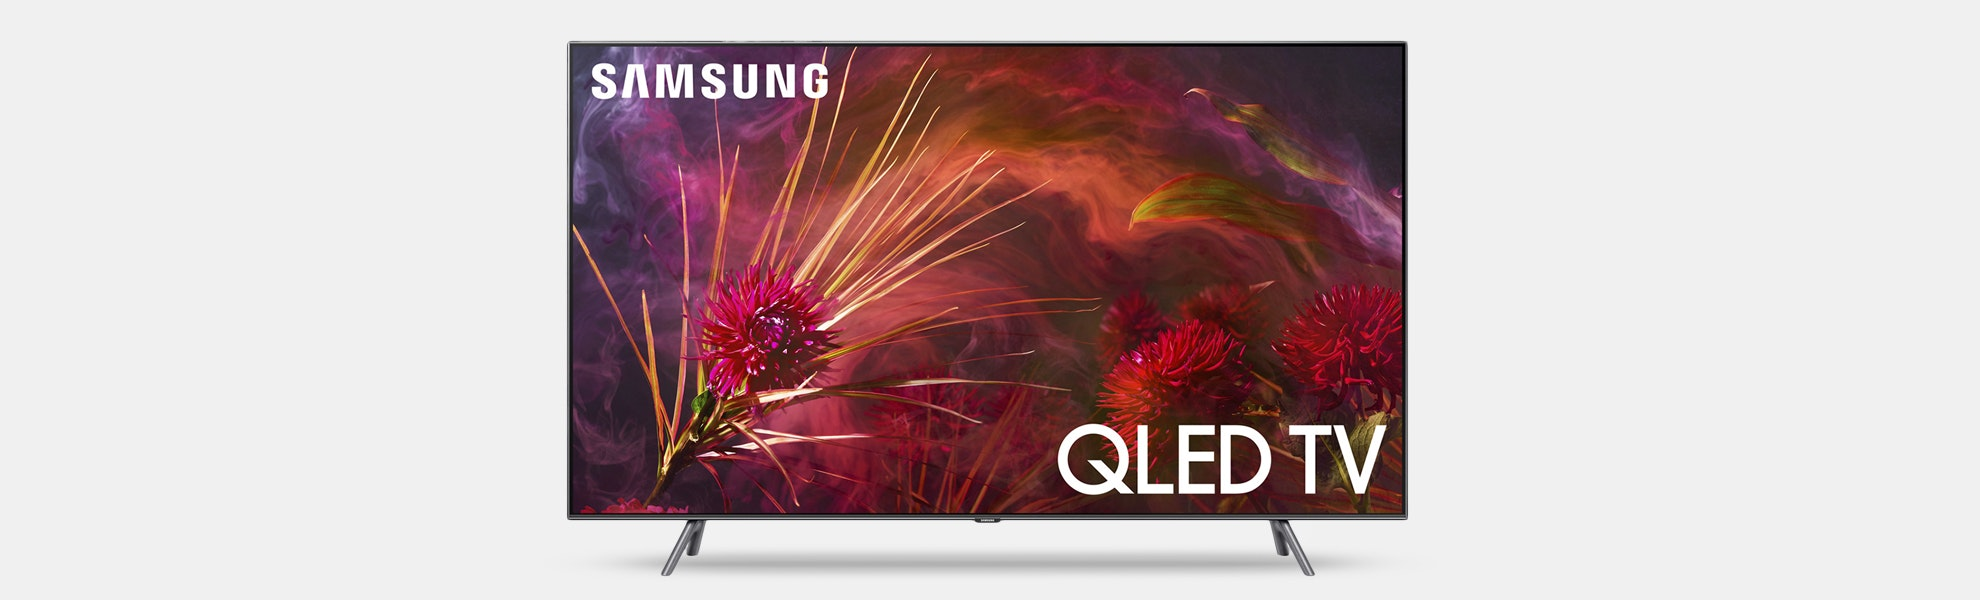 "Samsung 55/65/75"" Q8FN QLED Smart 4K UHD TV (2018)"